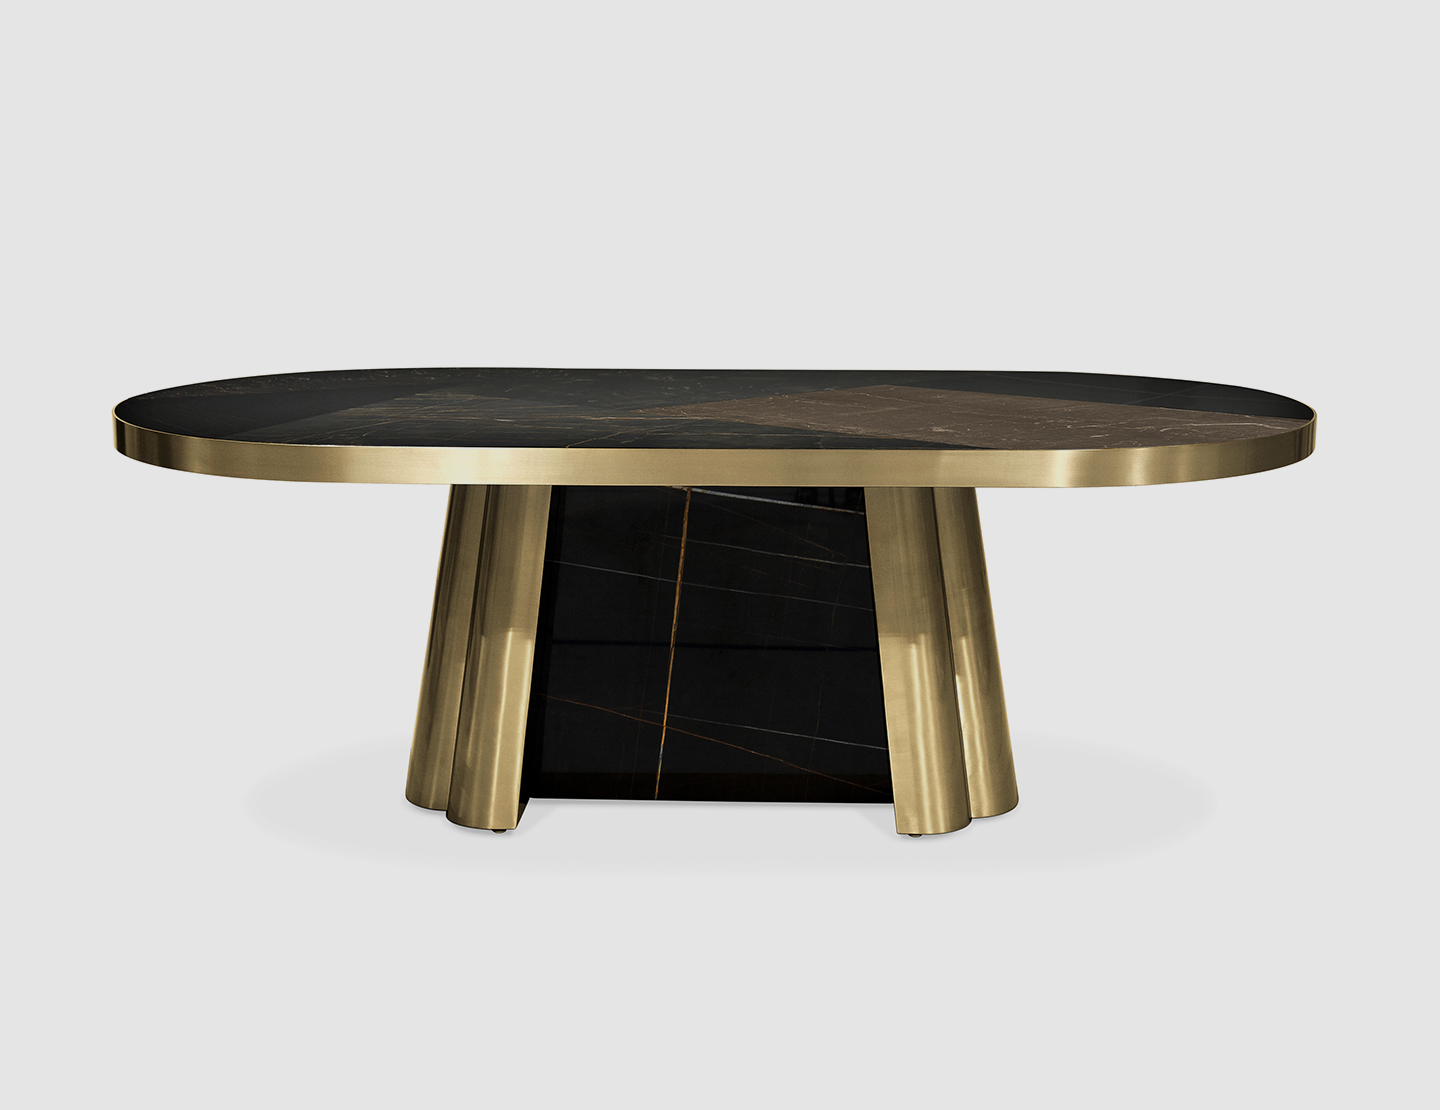 Sedia Bar Sport Decodiva Dining Table A Chic Dining Table By Koket